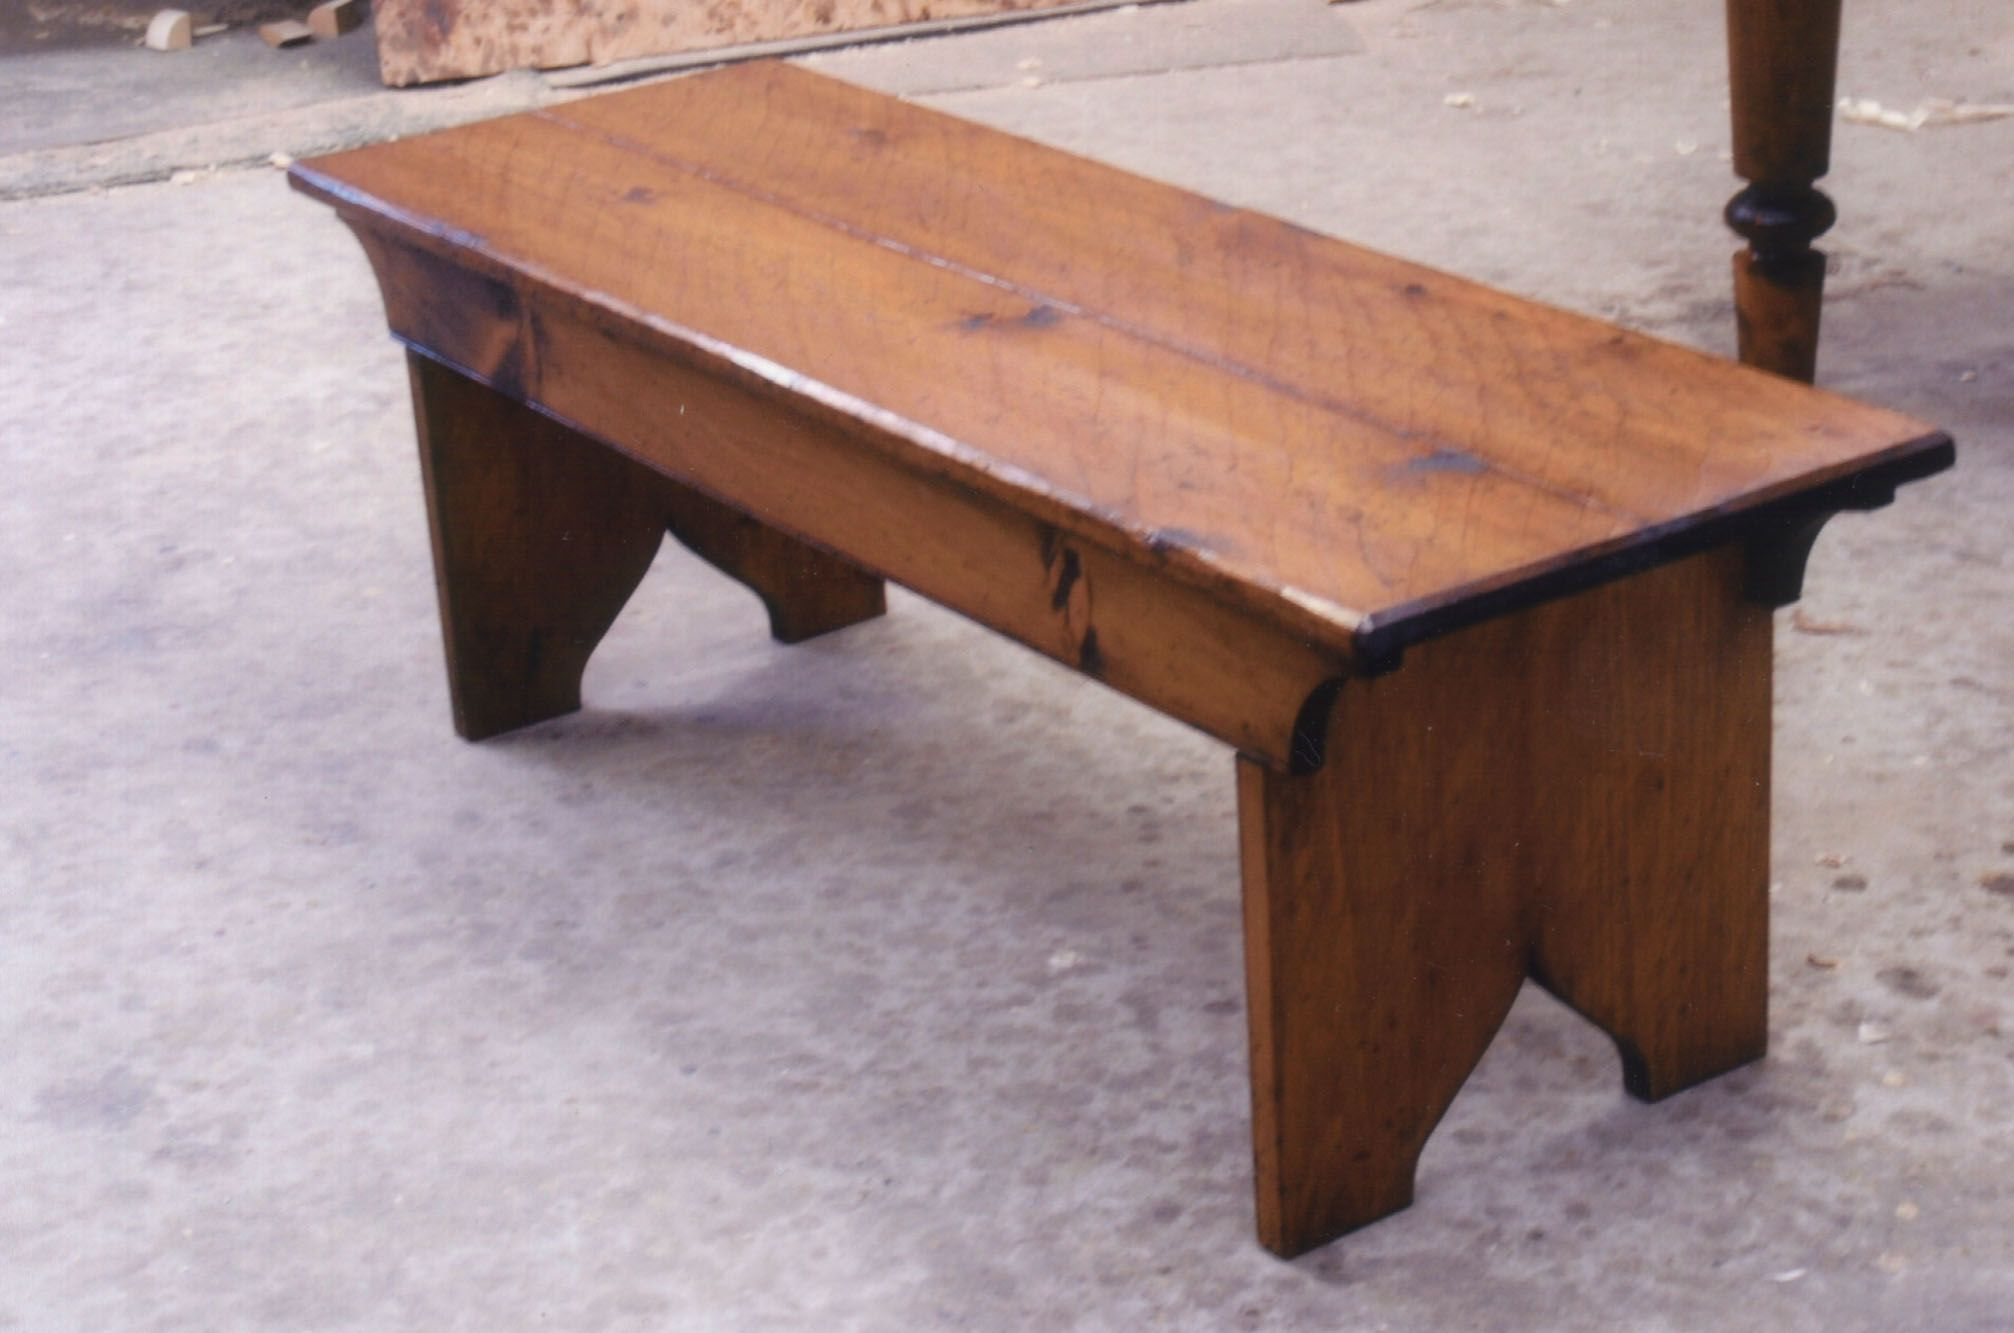 bench pictures Pine Farmhouse Table Benches areavailable